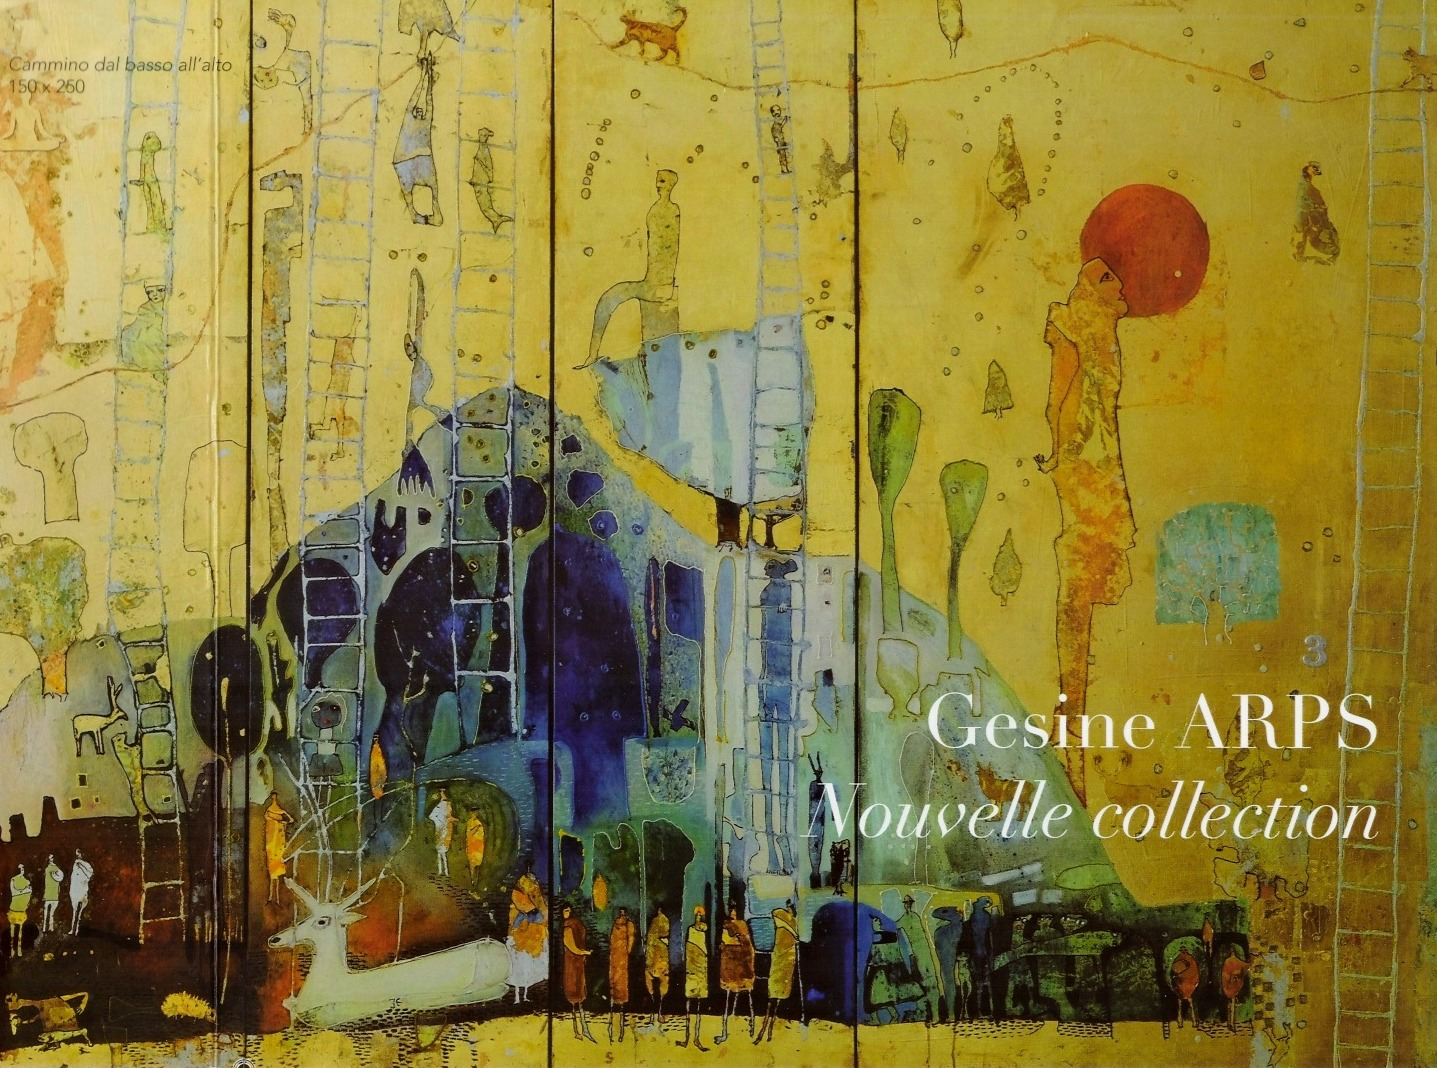 Gesine Arps, Nouvelle collection